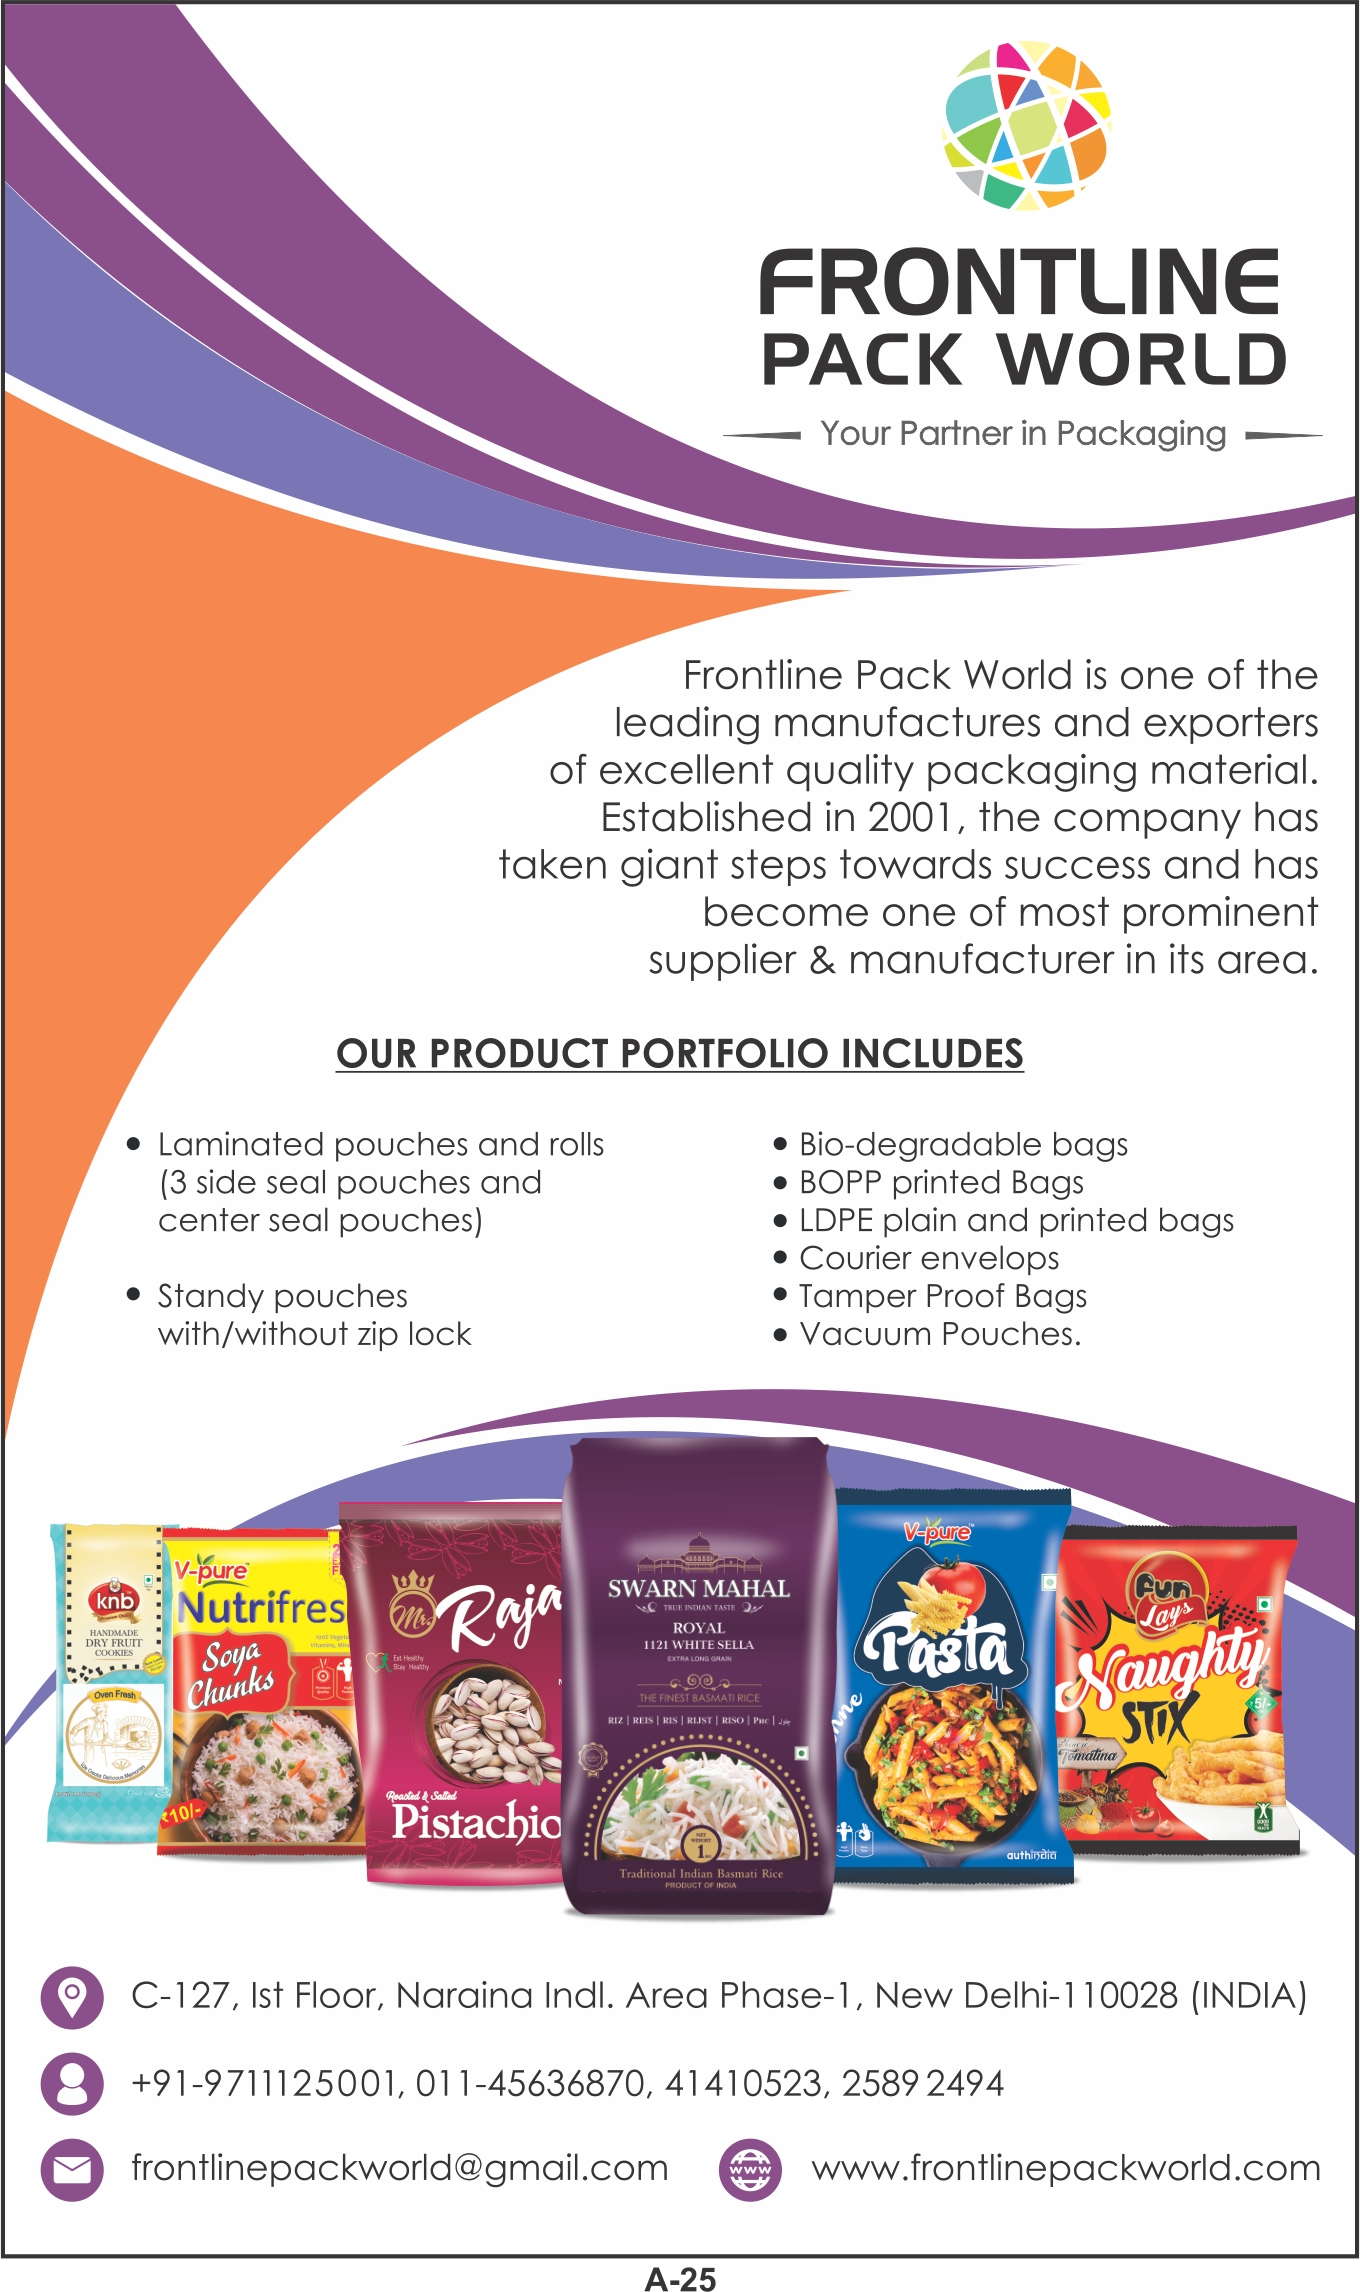 FRONTLINE PACK WORLD   Food Packaging Products   Food and FMCG ...